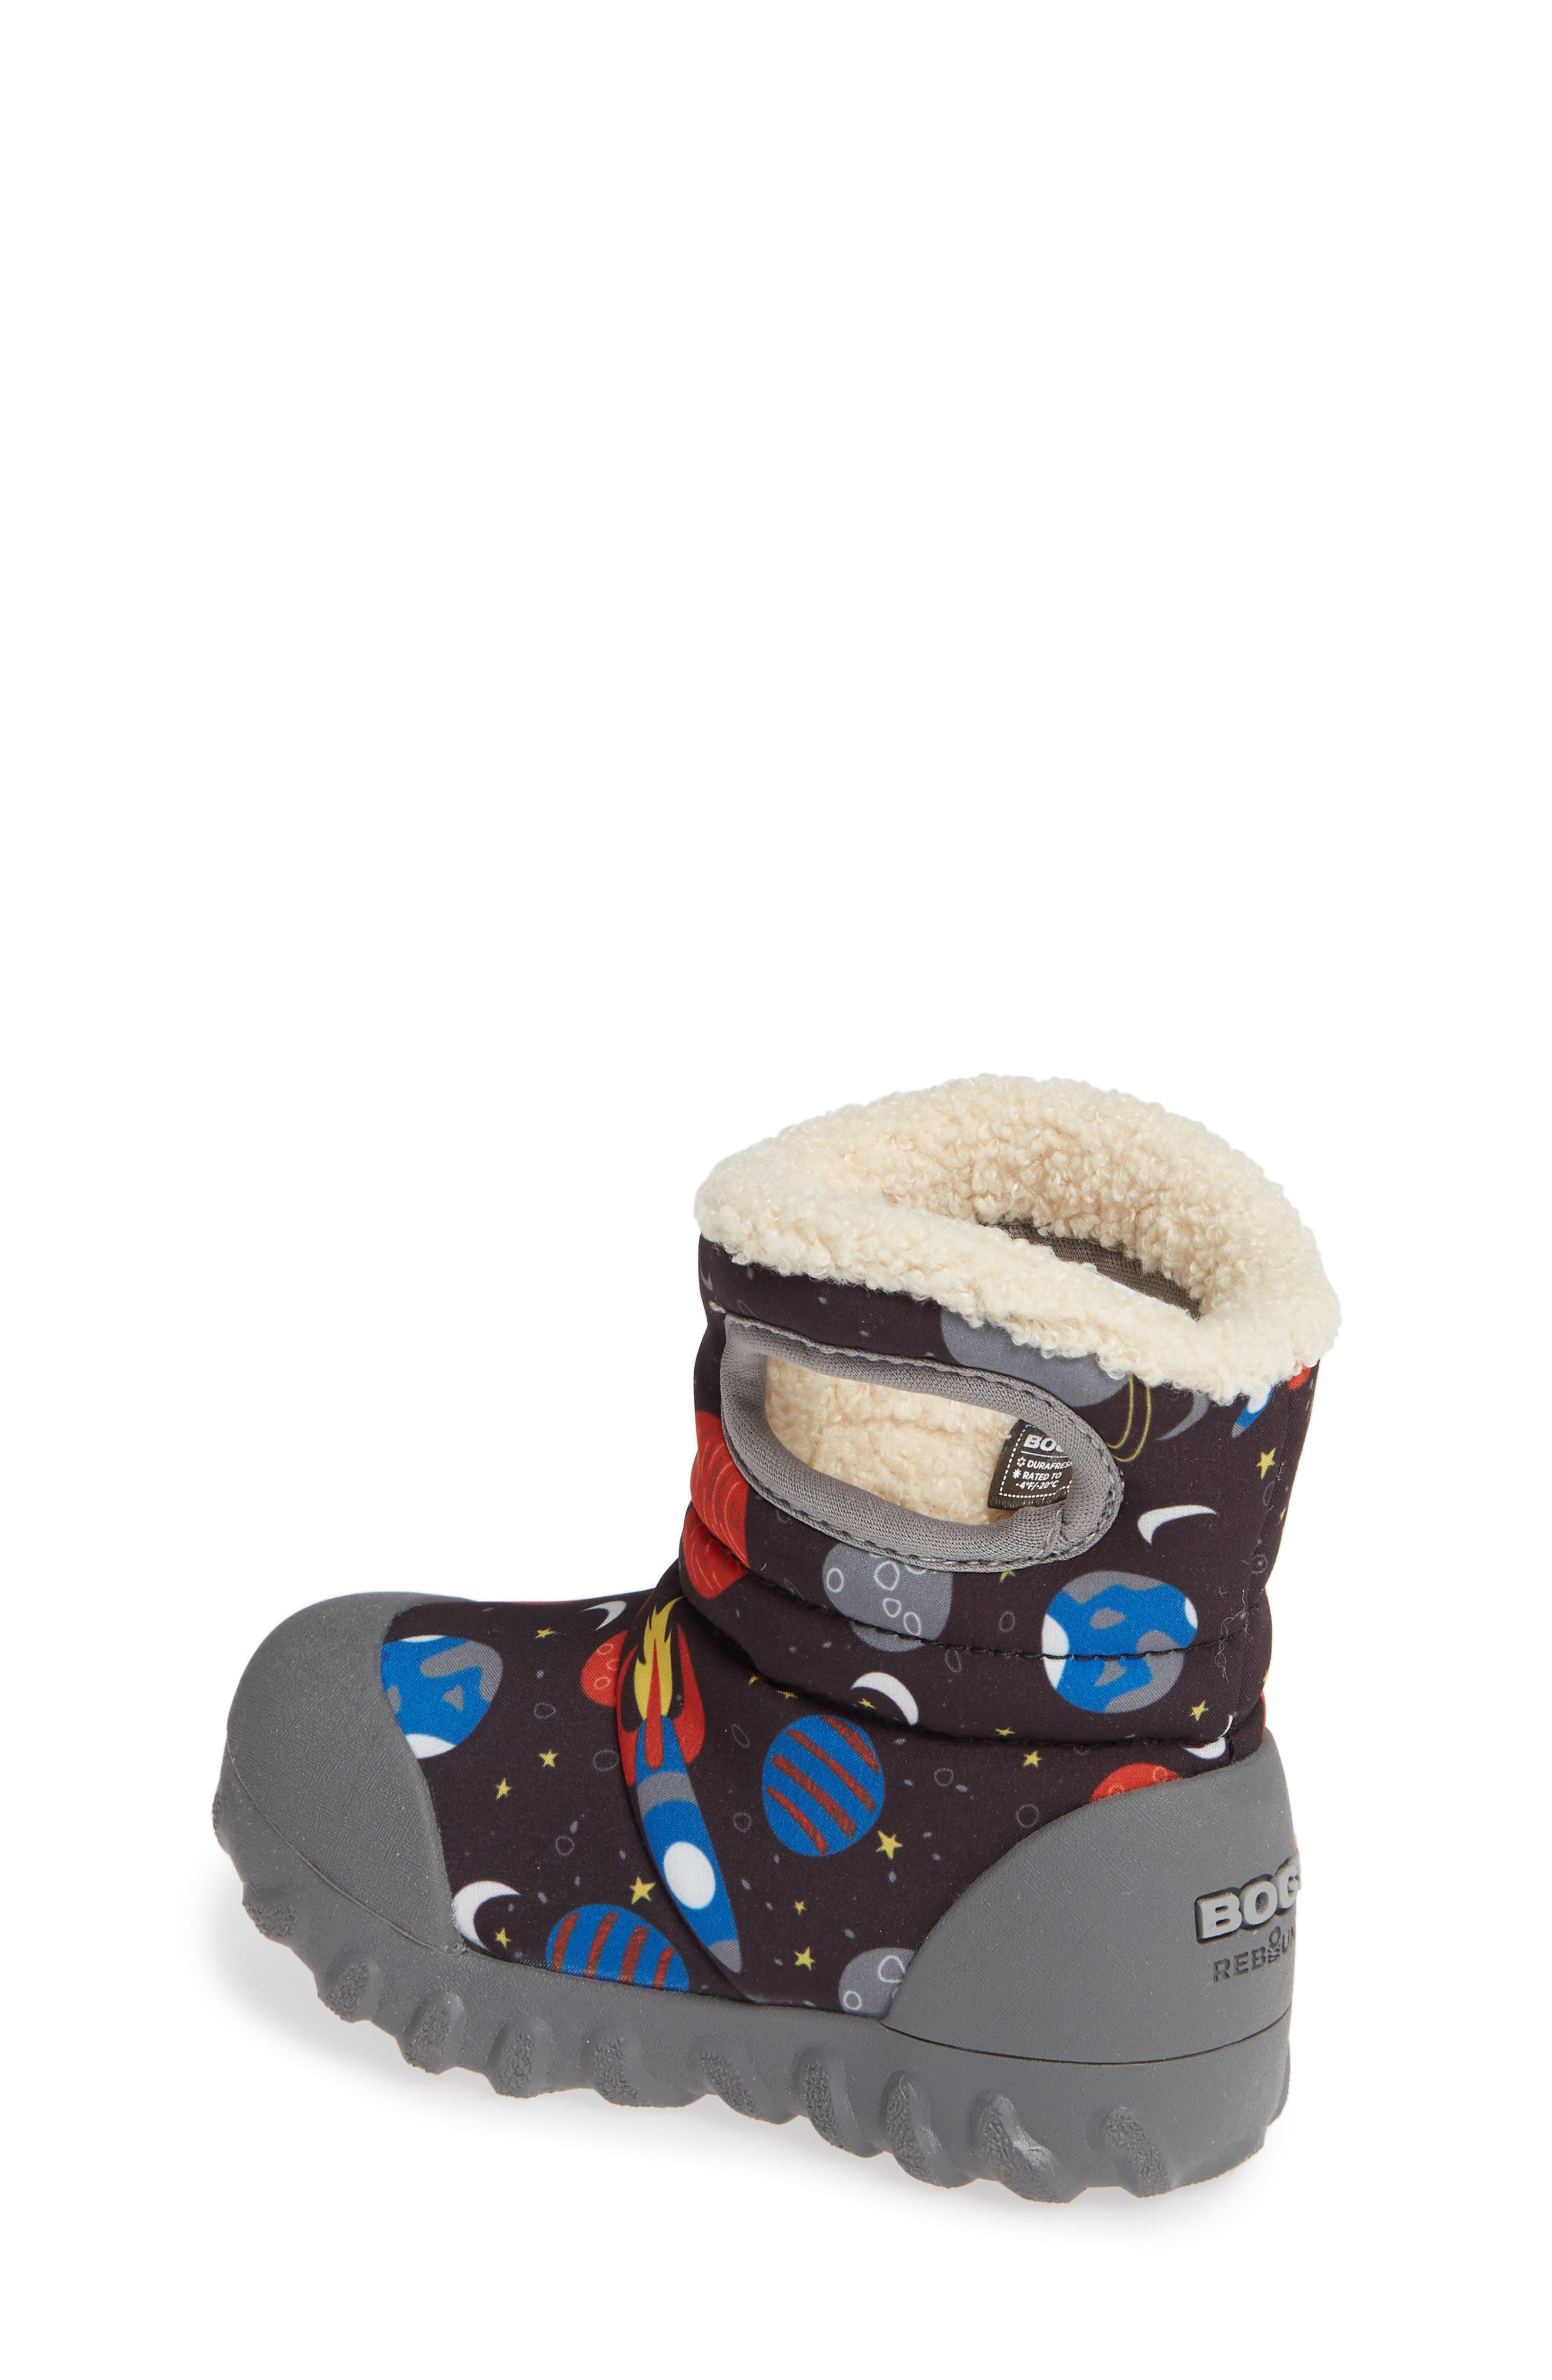 B-MOC Space Waterproof Insulated Faux Fur Boot,                             Alternate thumbnail 2, color,                             009